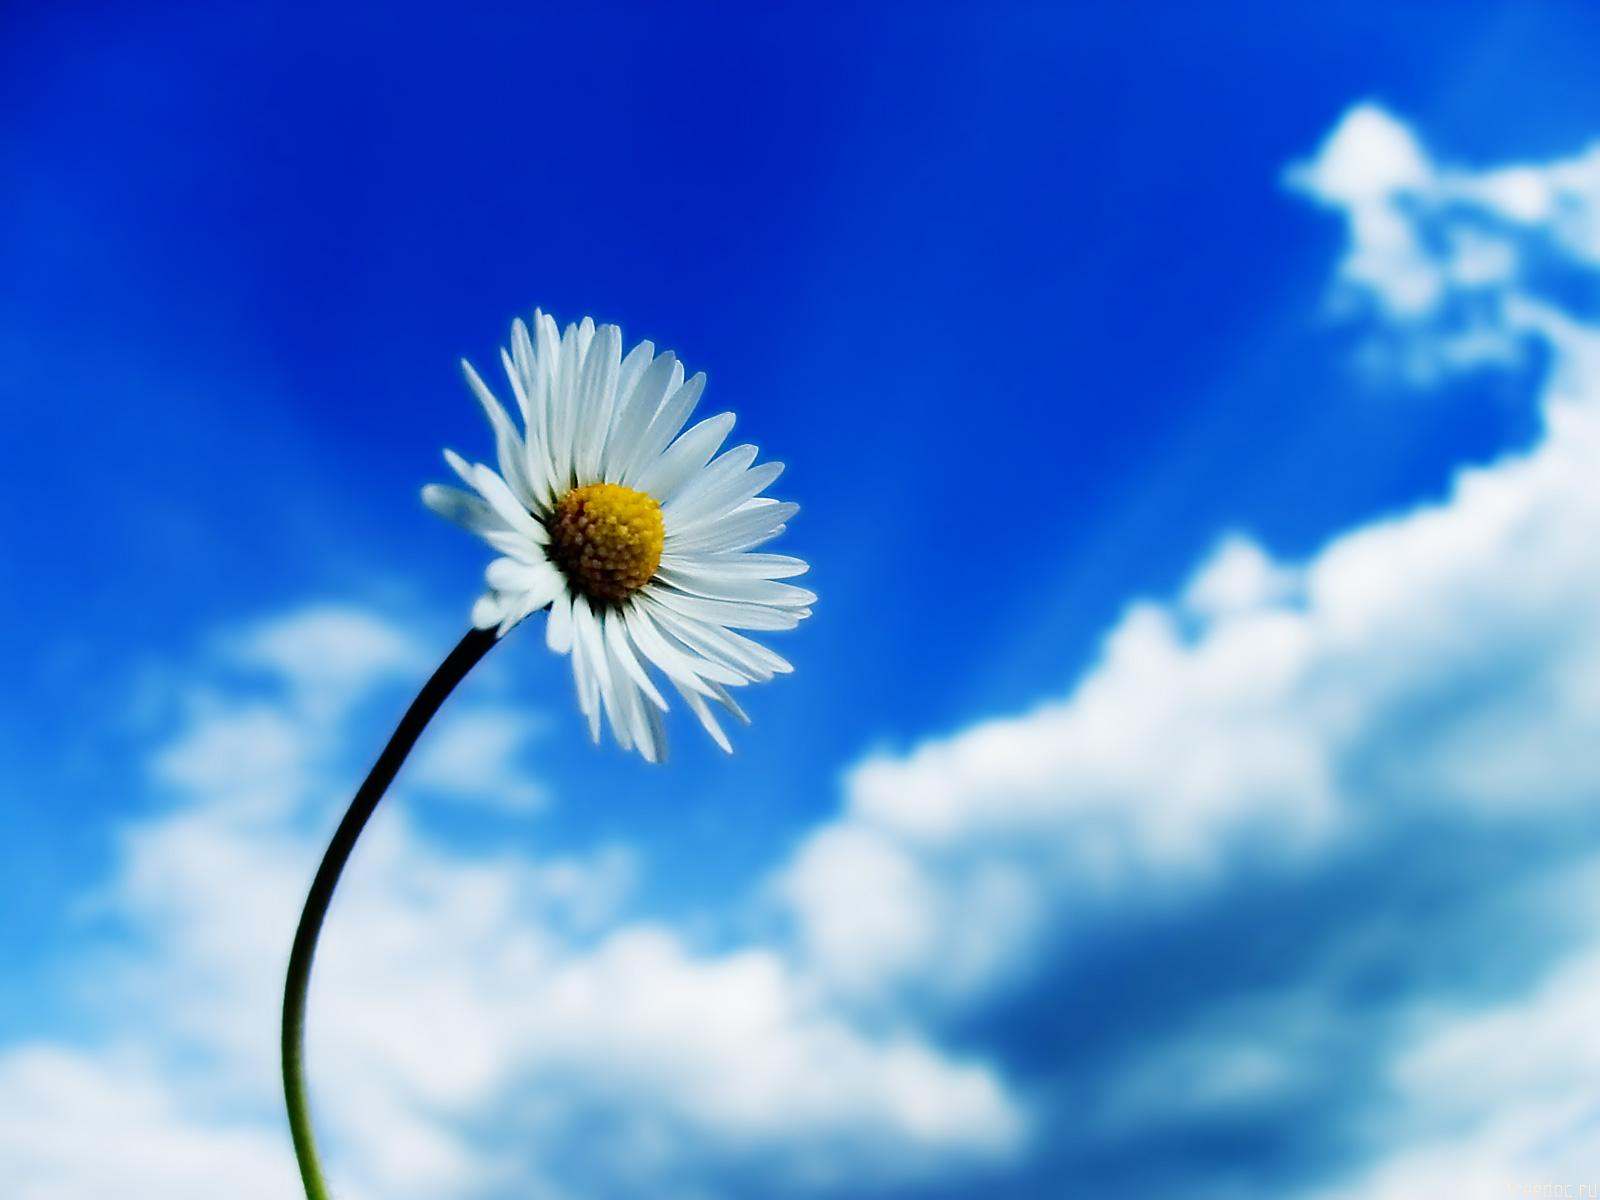 http://2.bp.blogspot.com/-qPBiXmiuUG4/TePr8EPE1gI/AAAAAAAAAH4/F1YMdFRUTx0/s1600/beautiful_sky_white_flower-normal-wallpaper.jpg